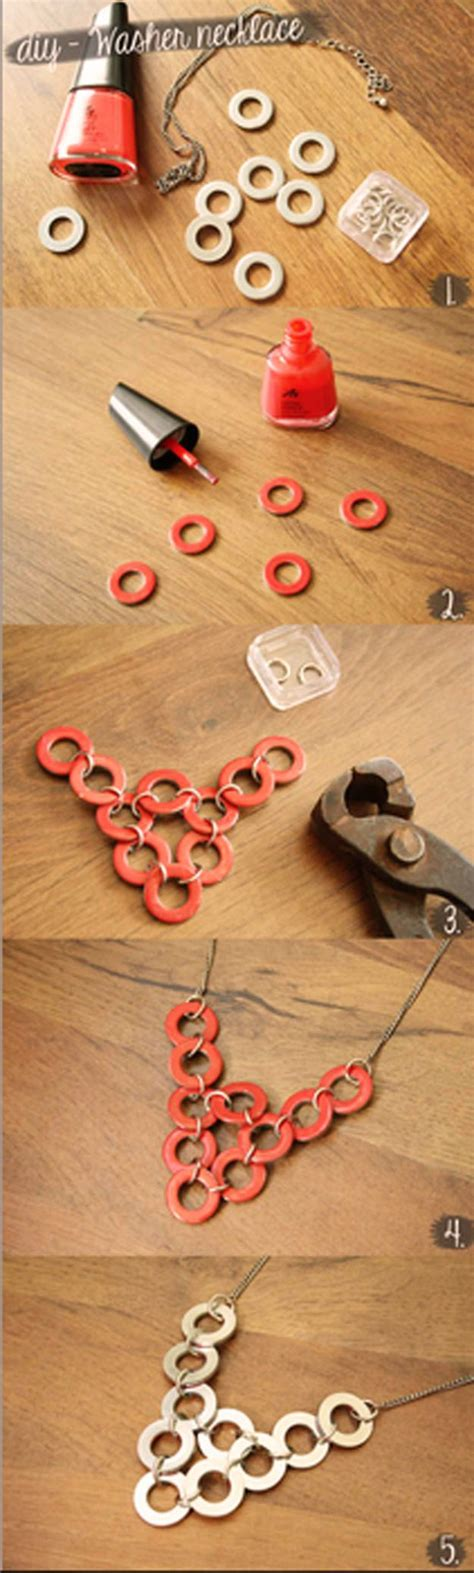 easy jewelry projects cool easy diy jewelry ideas diy projects craft ideas